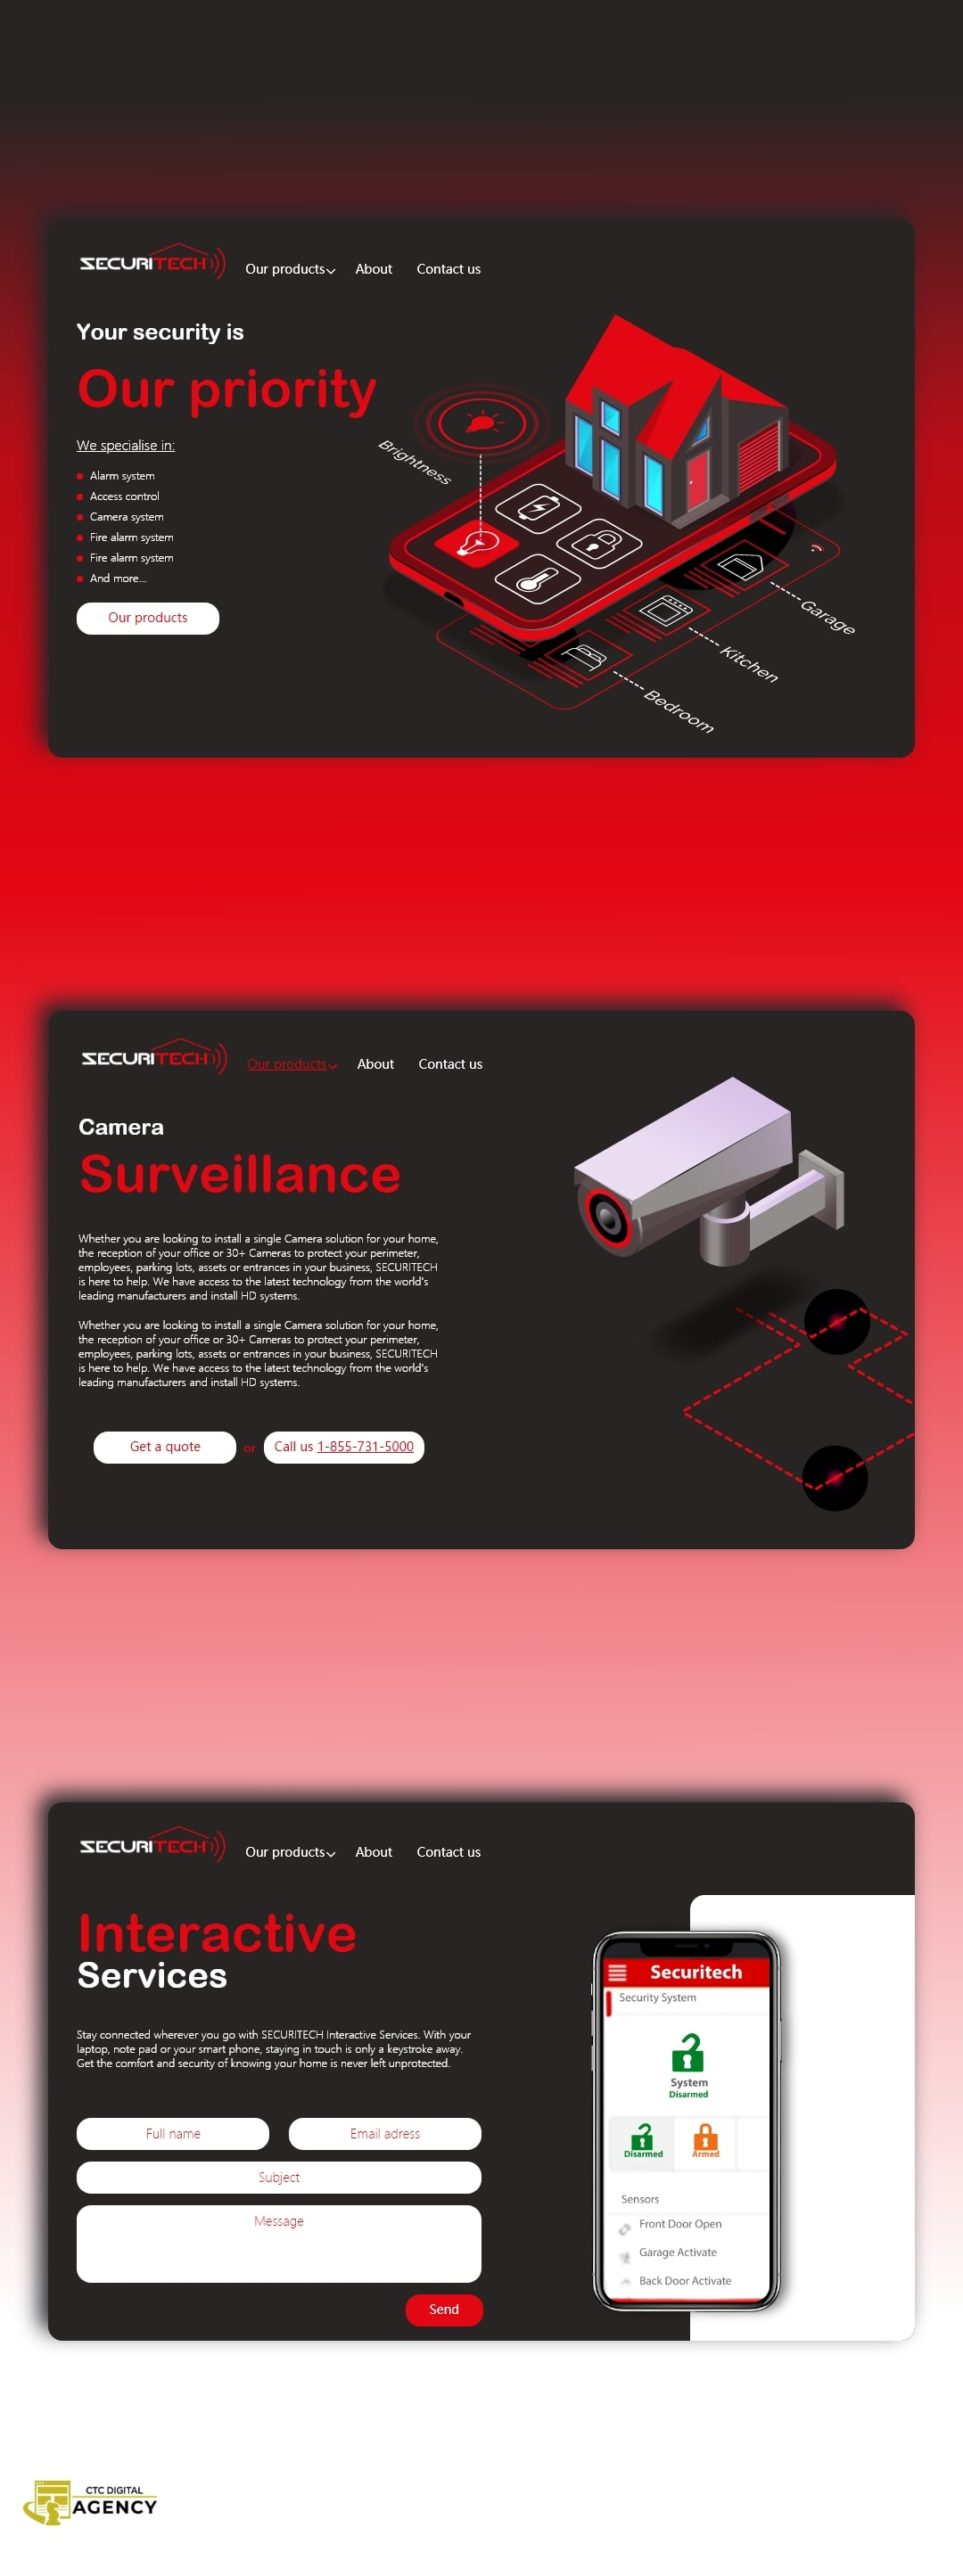 Securitech concept by CTC Digital Agency